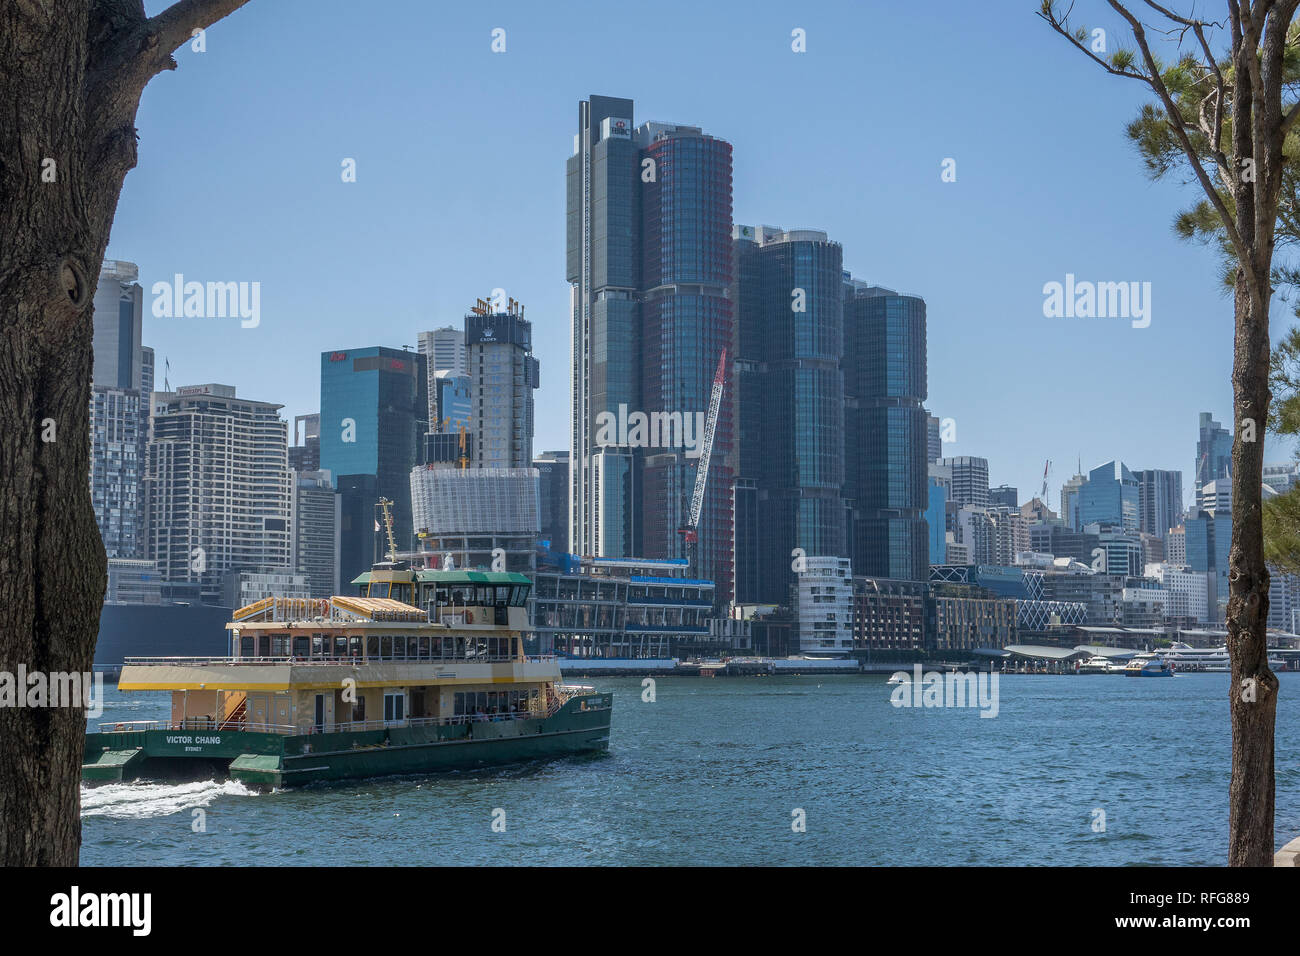 Australia, New South Wales, Sydney, Balmain, view of Barangaroo across Darling Harbour - Stock Image